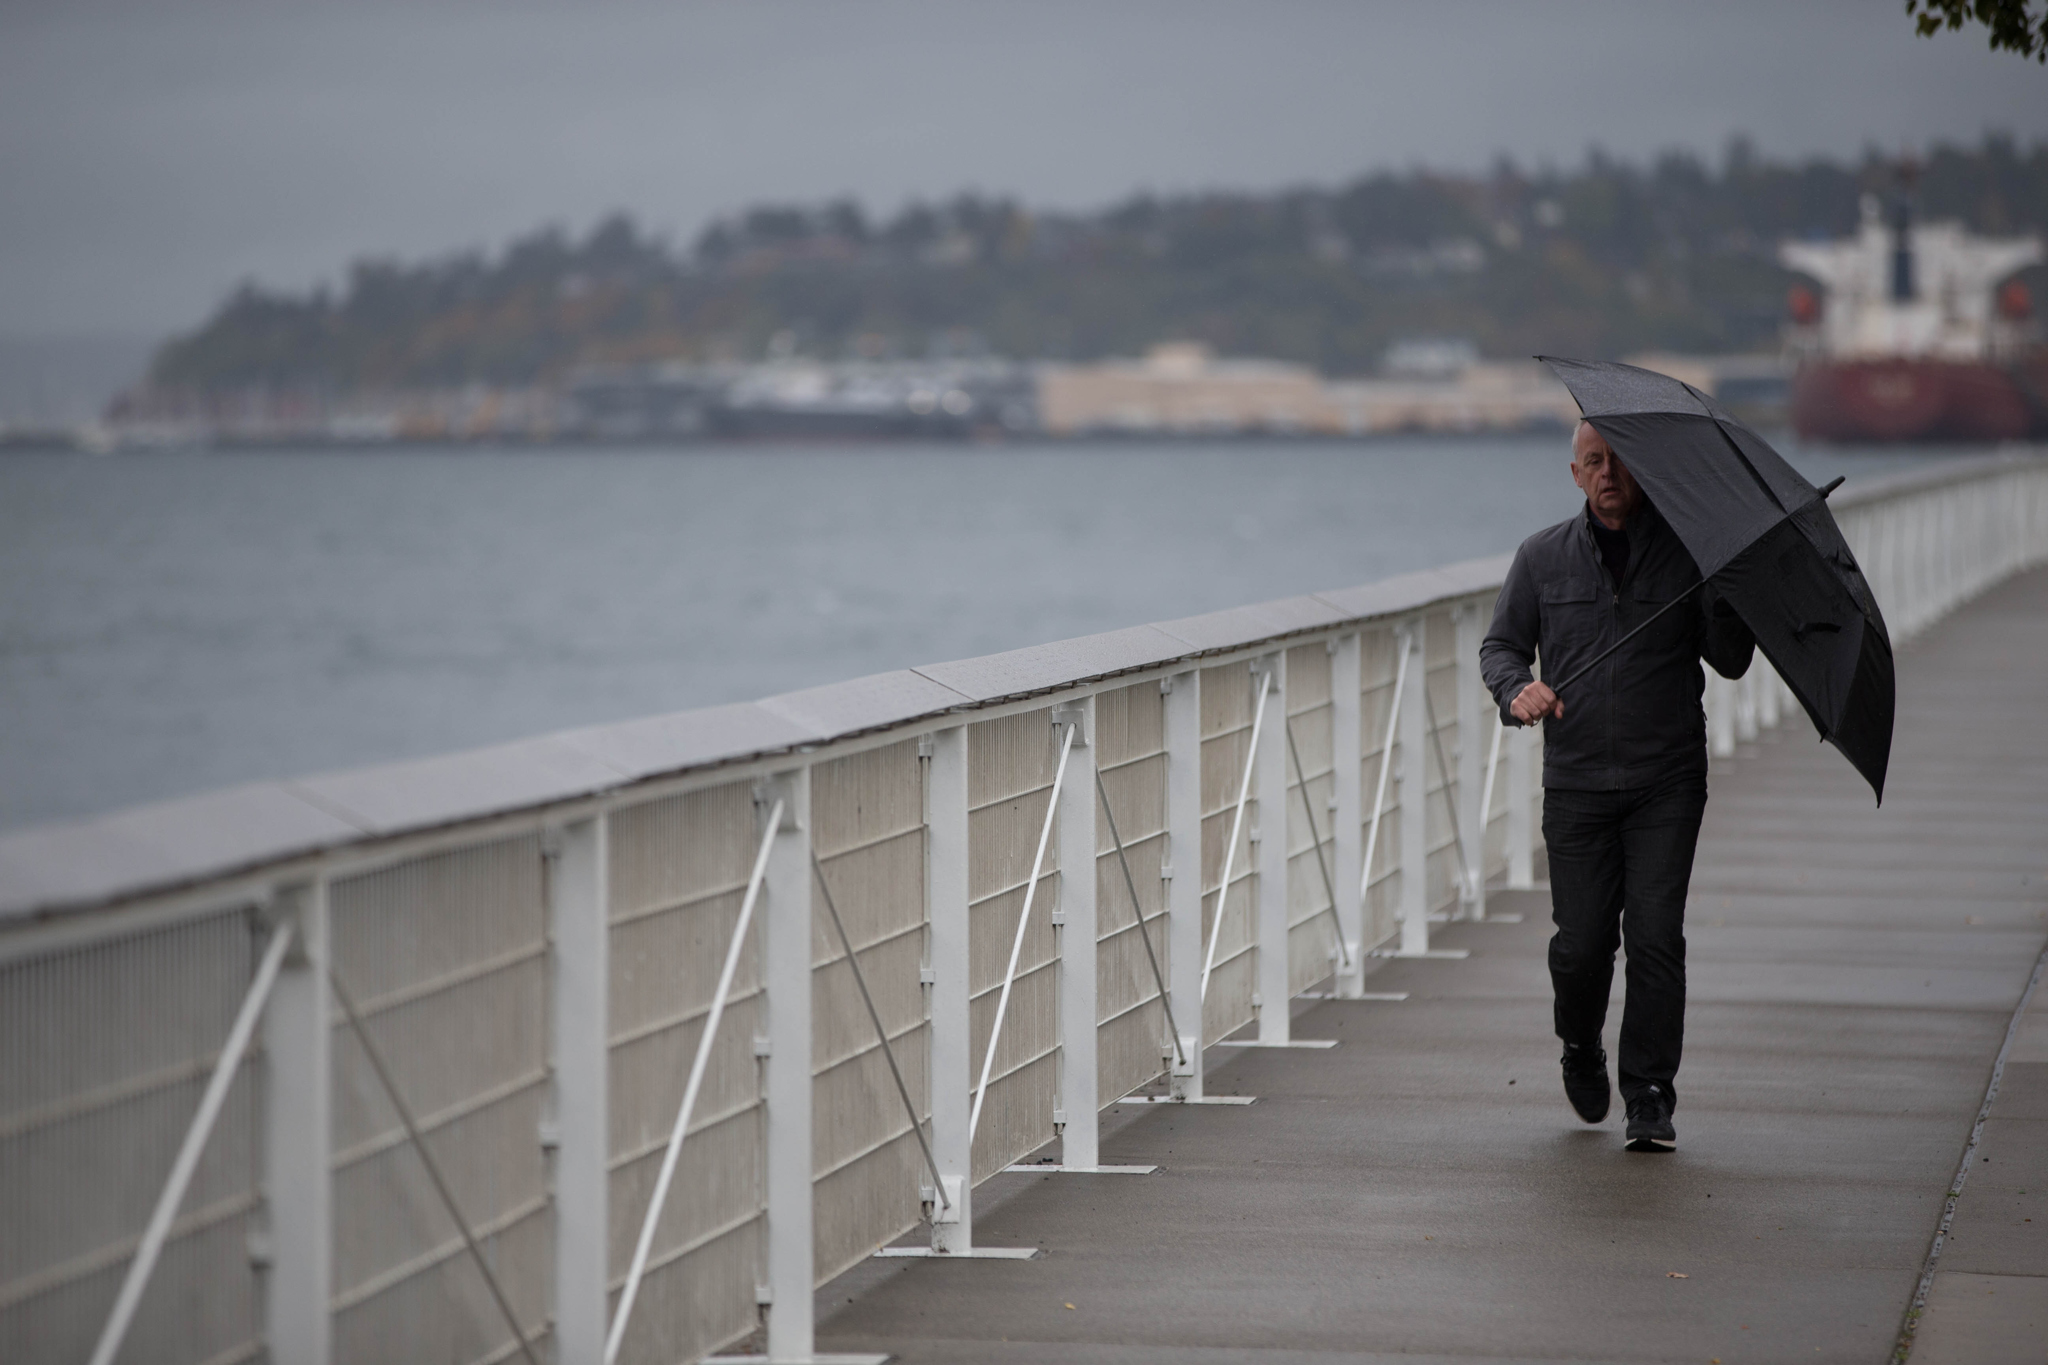 Raining on Nov. 19...again? Seattle's quirky 'rain magnet' works its charm